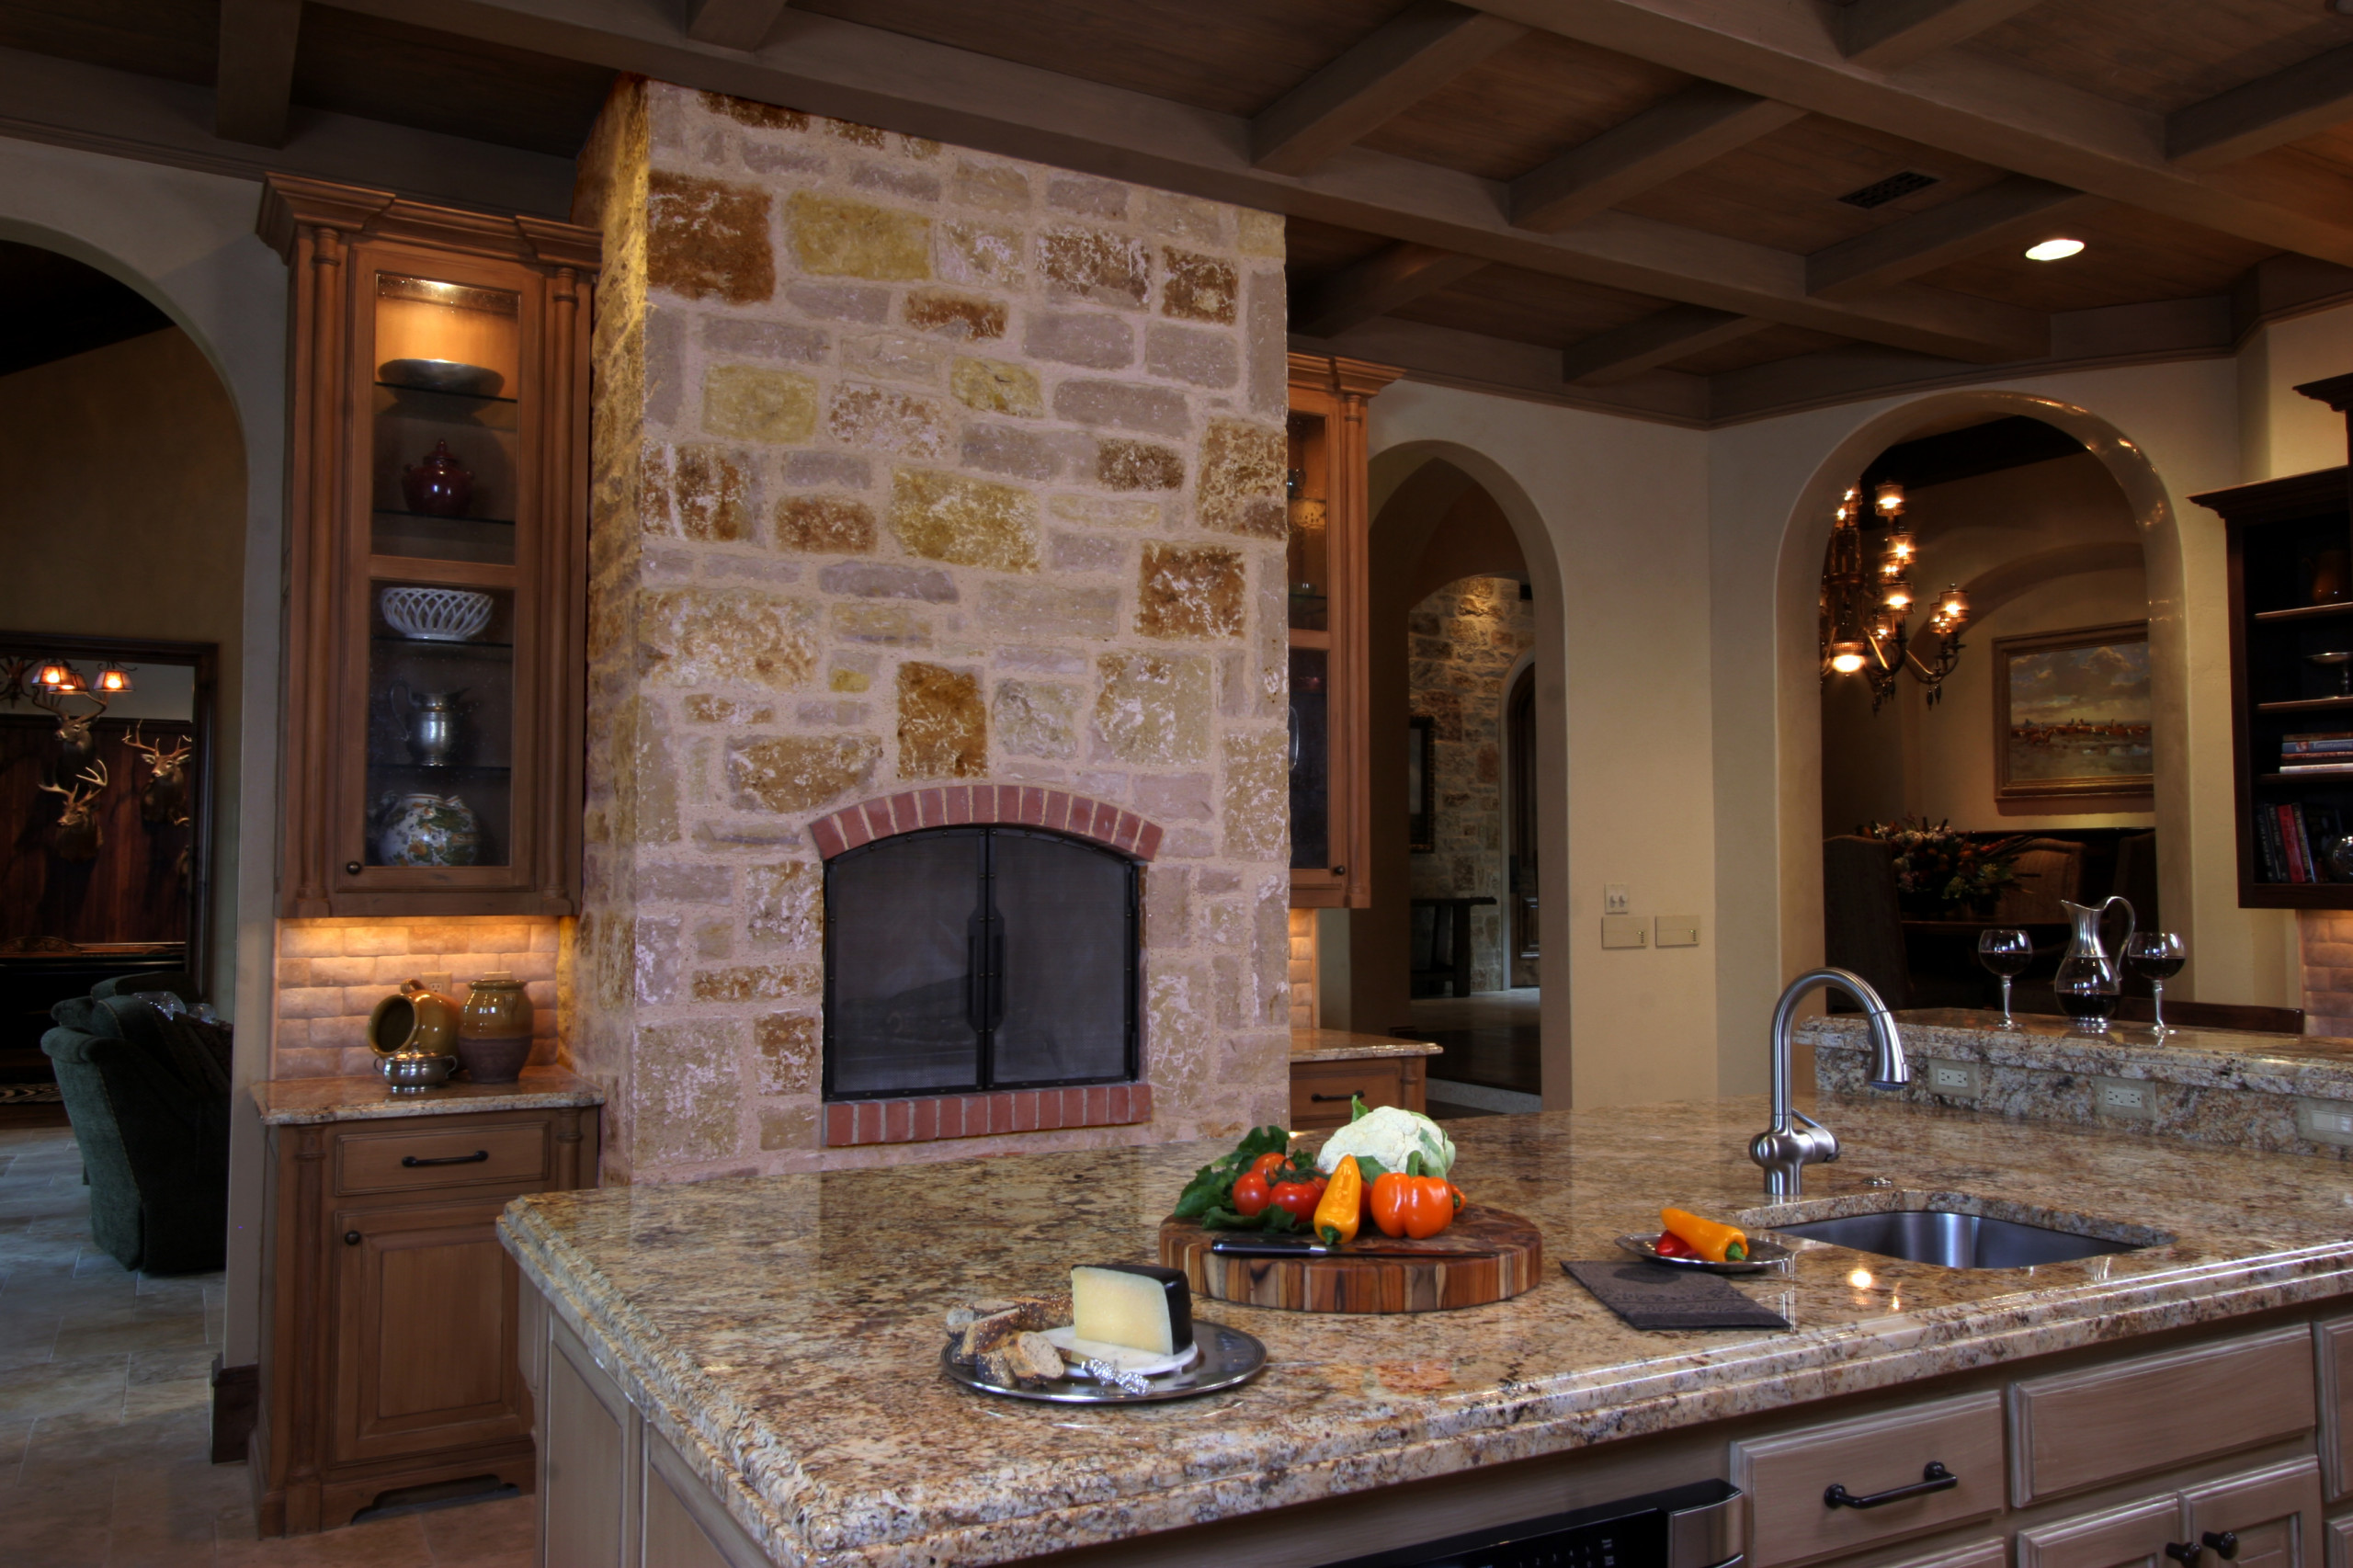 Natural Tuscan Inspired Kitchen - View of Fireplace